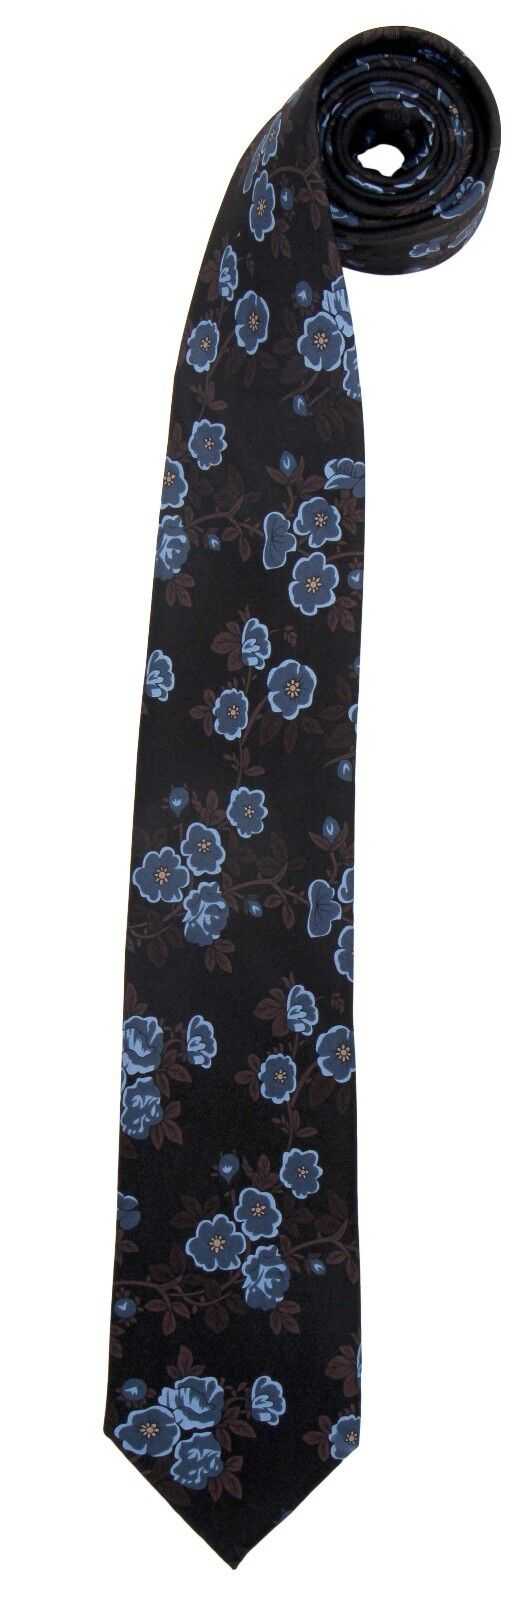 Doctor Dr. Who - 10th Doctor 50th Anniversary Necktie Tie Elope